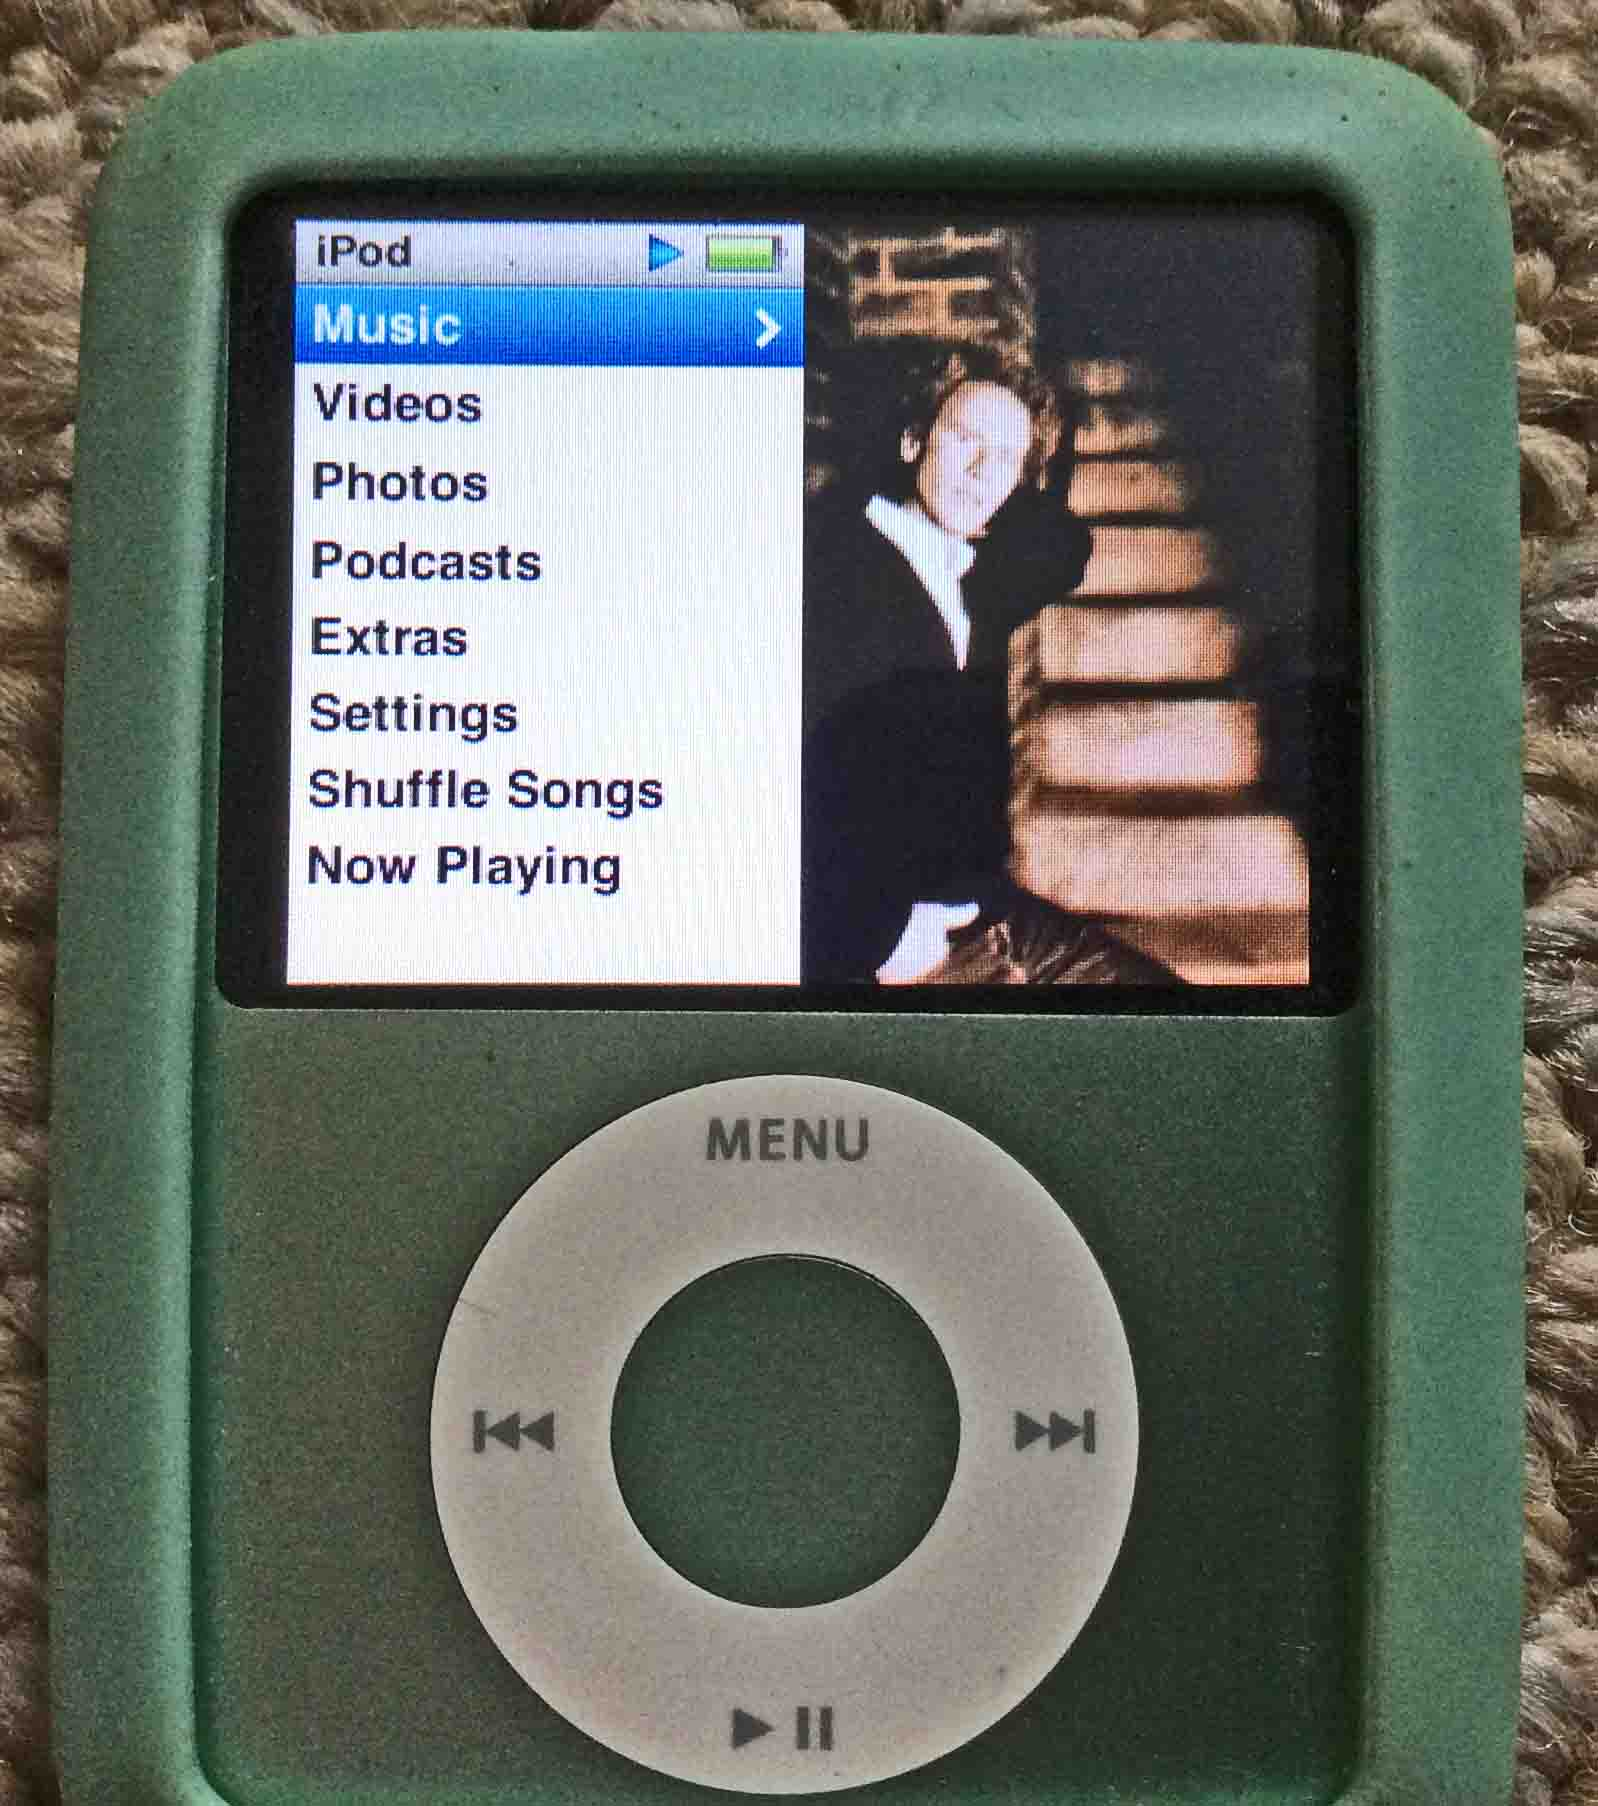 does resetting ipod delete music